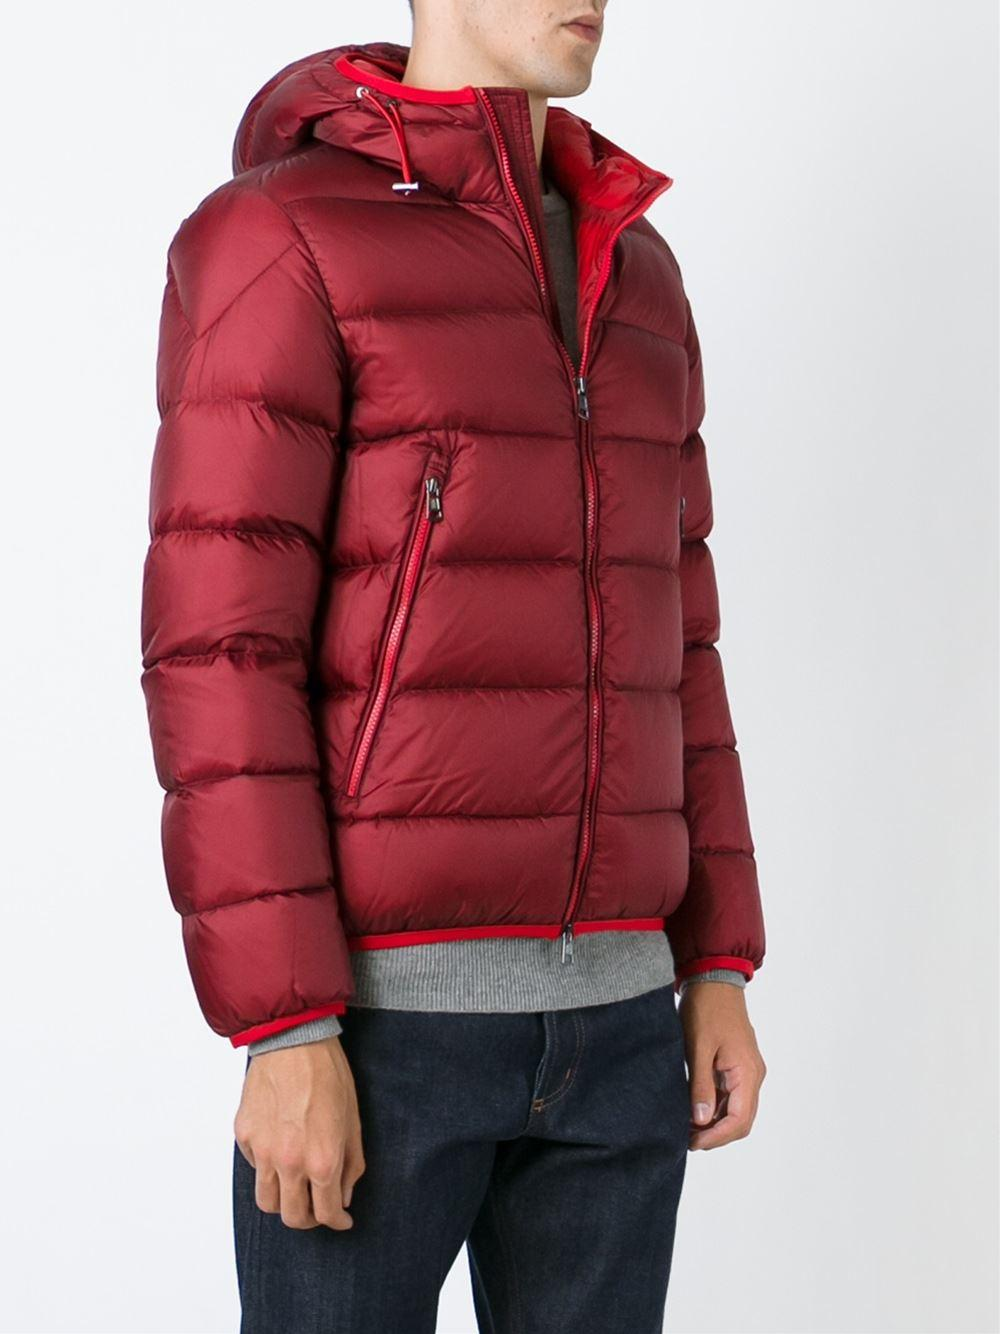 Lyst Moncler Chauvon Bomber Jacket In Red For Men